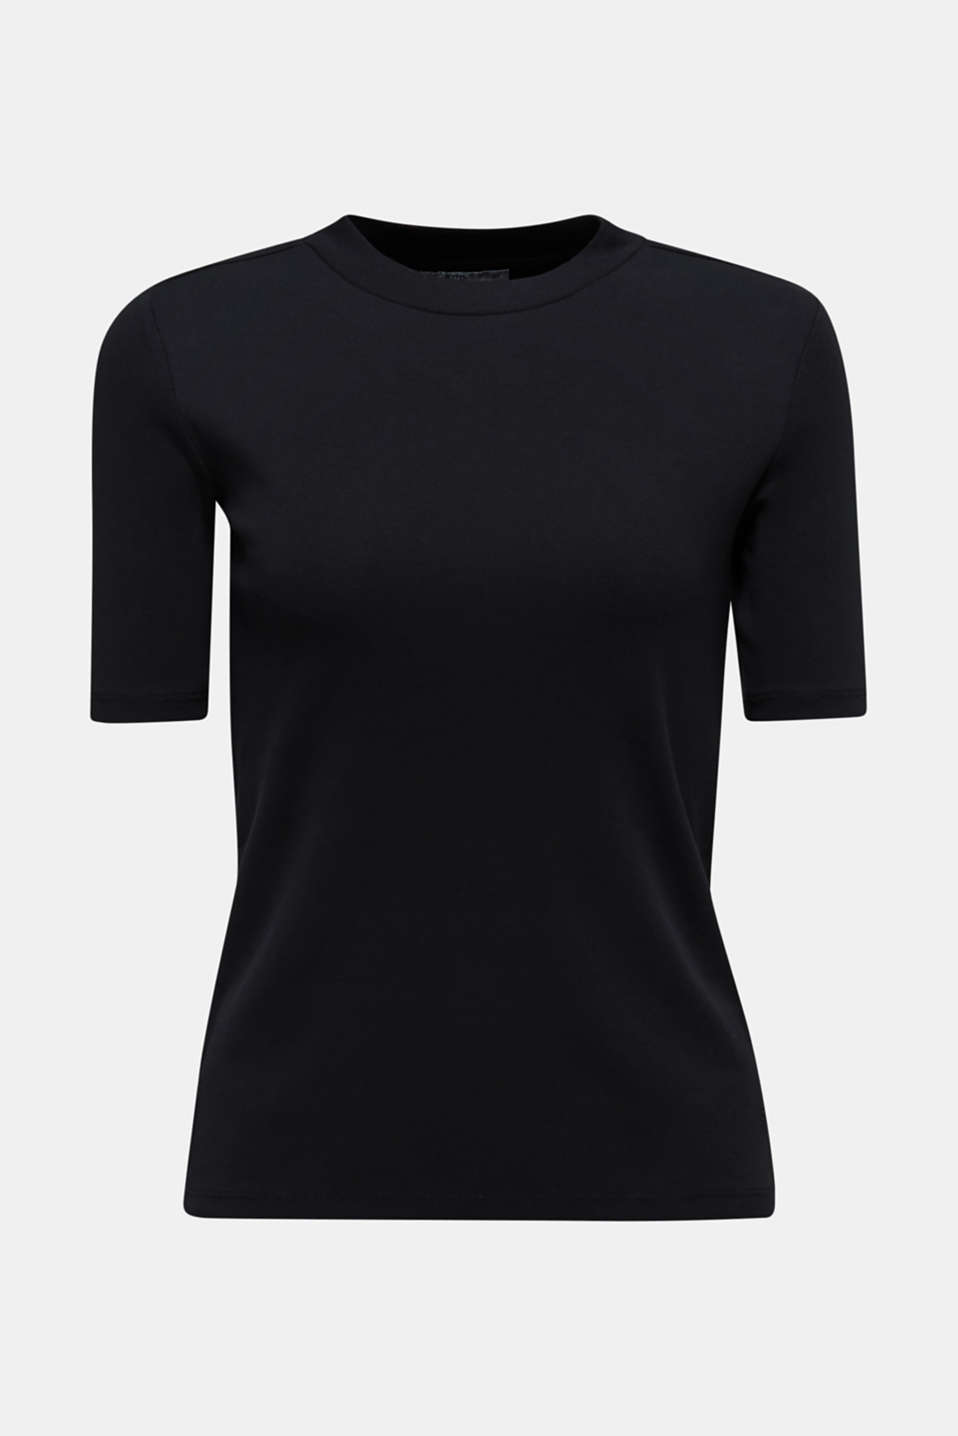 T-shirt with a stand-up collar, 100% cotton, BLACK, detail image number 5